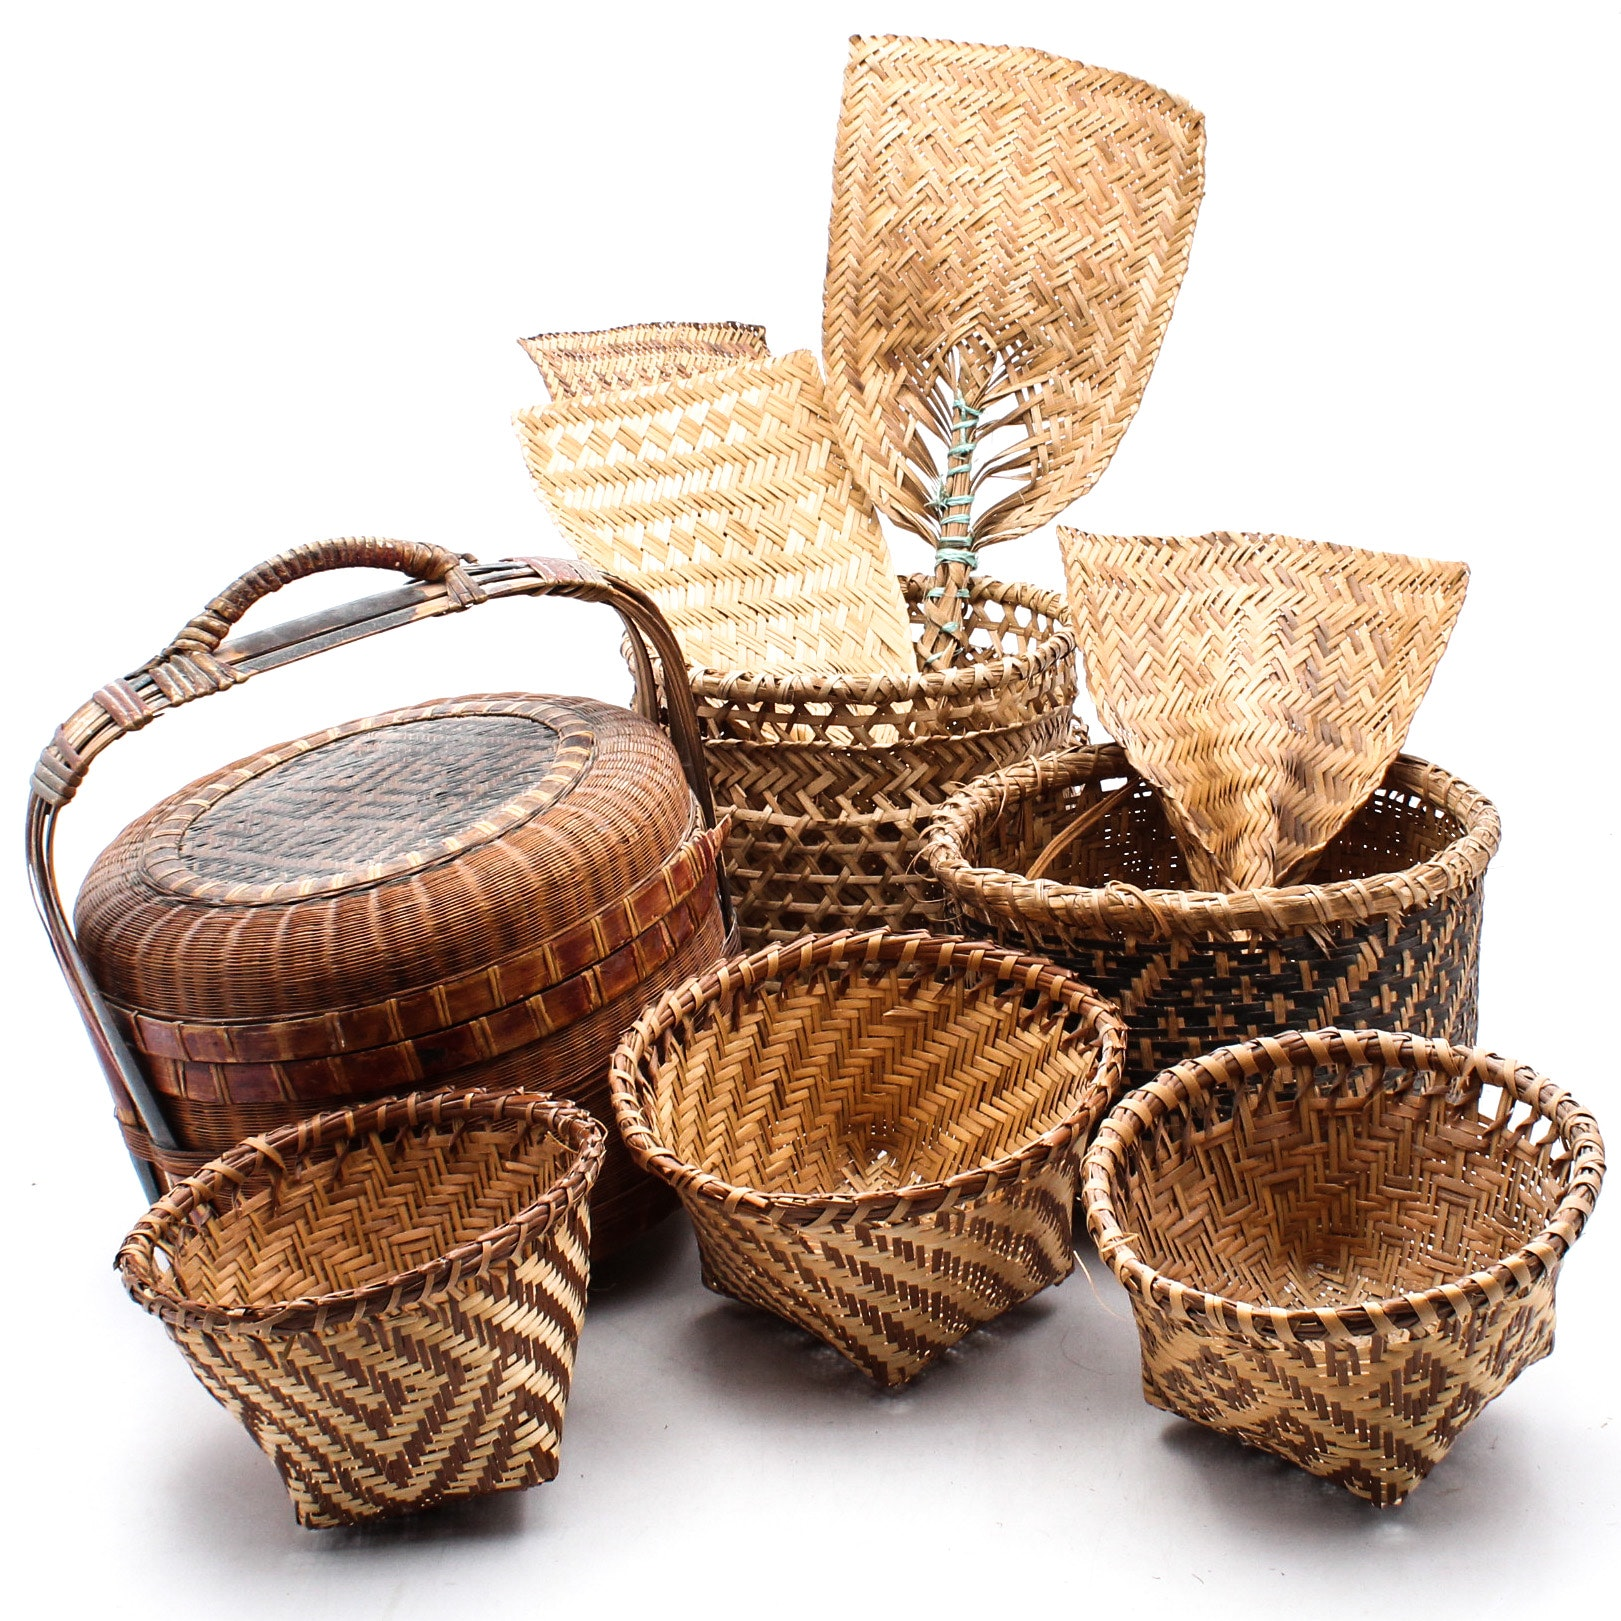 Woven Baskets and Fans